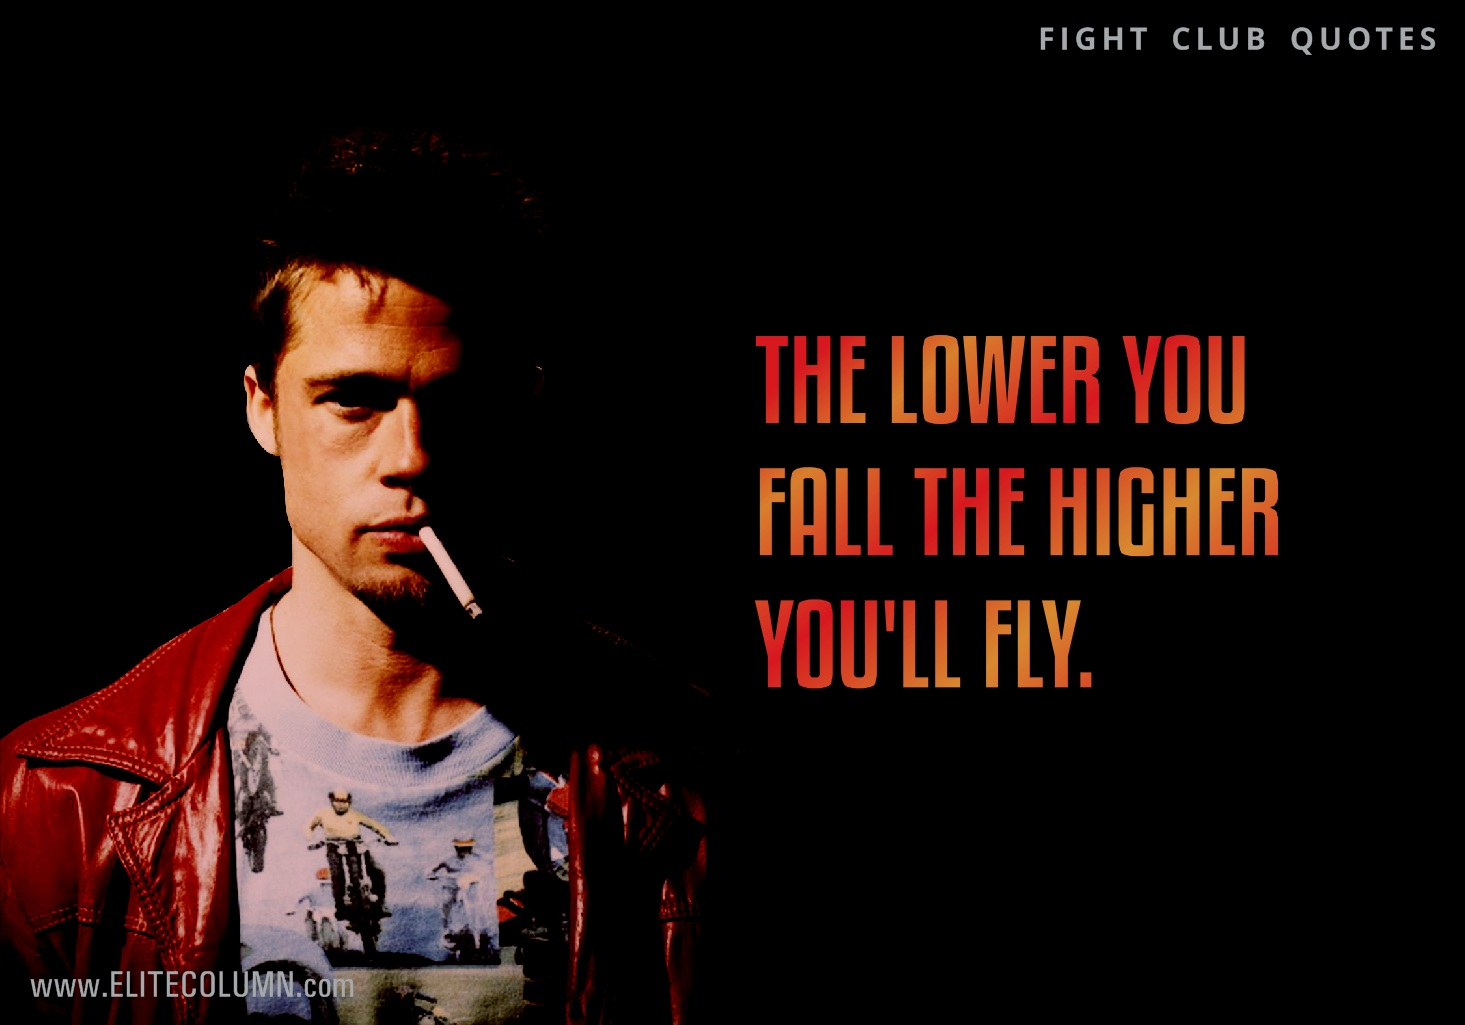 Fight Club Quotes (11)